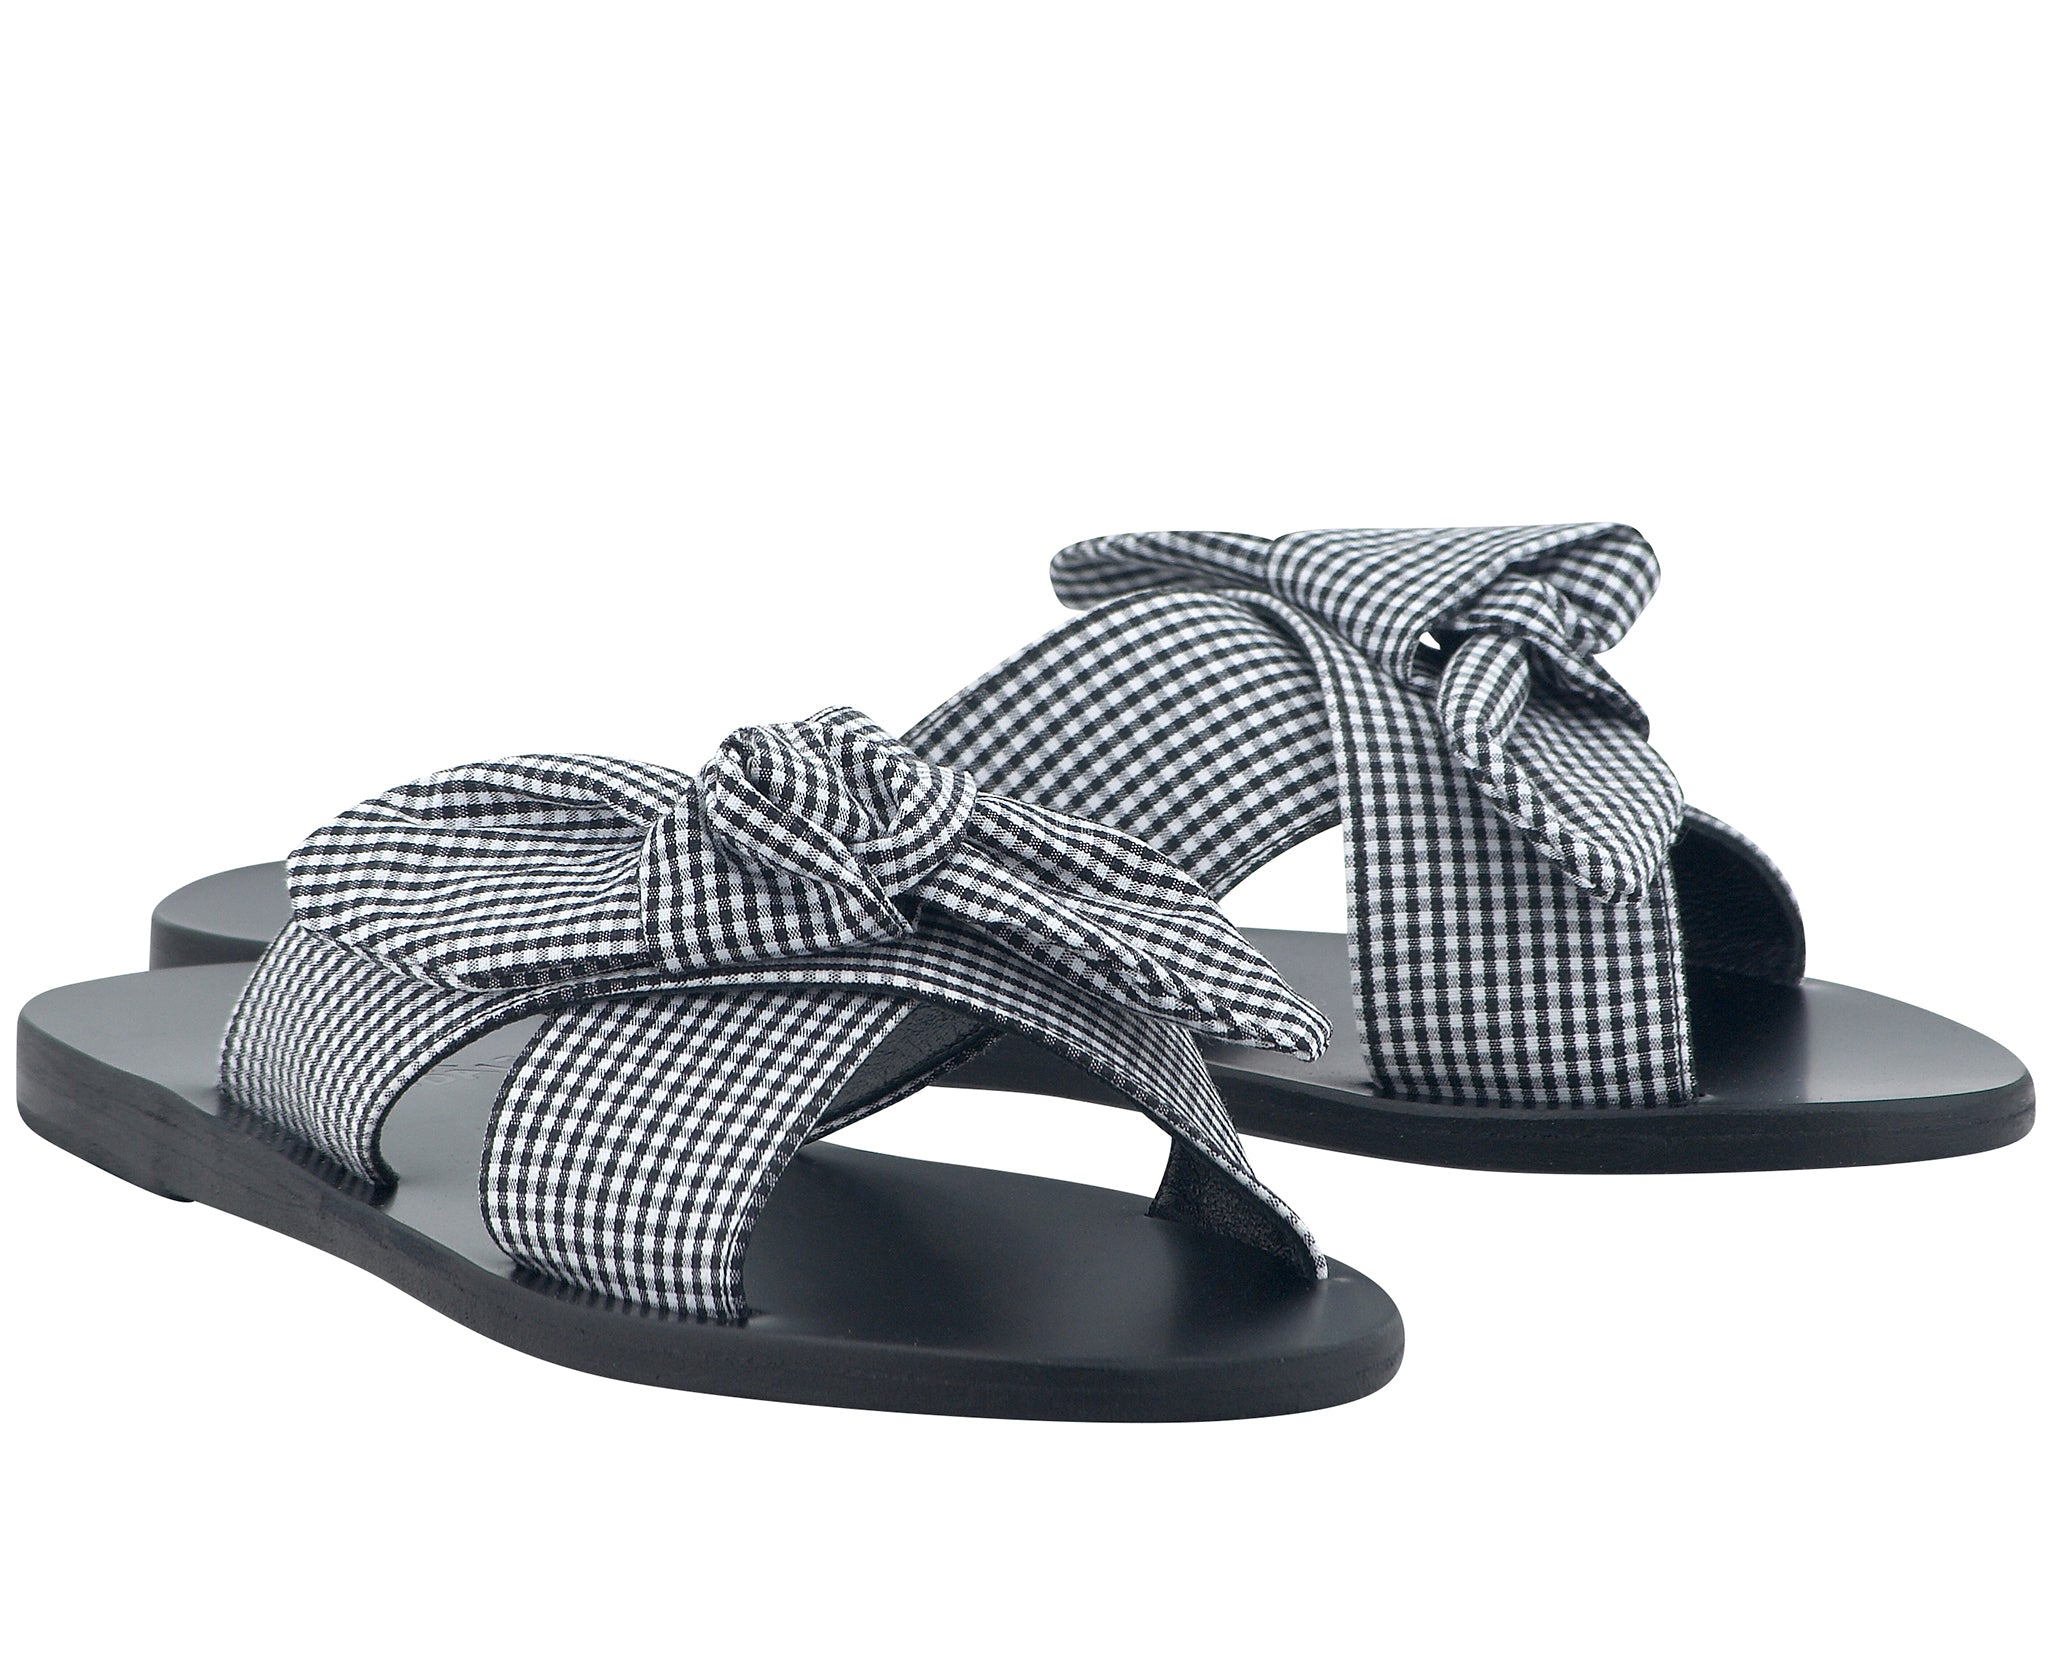 4a543b5f1e99f Ancient Greek Sandals Thais Bow Black Gingham | Tiina The Store